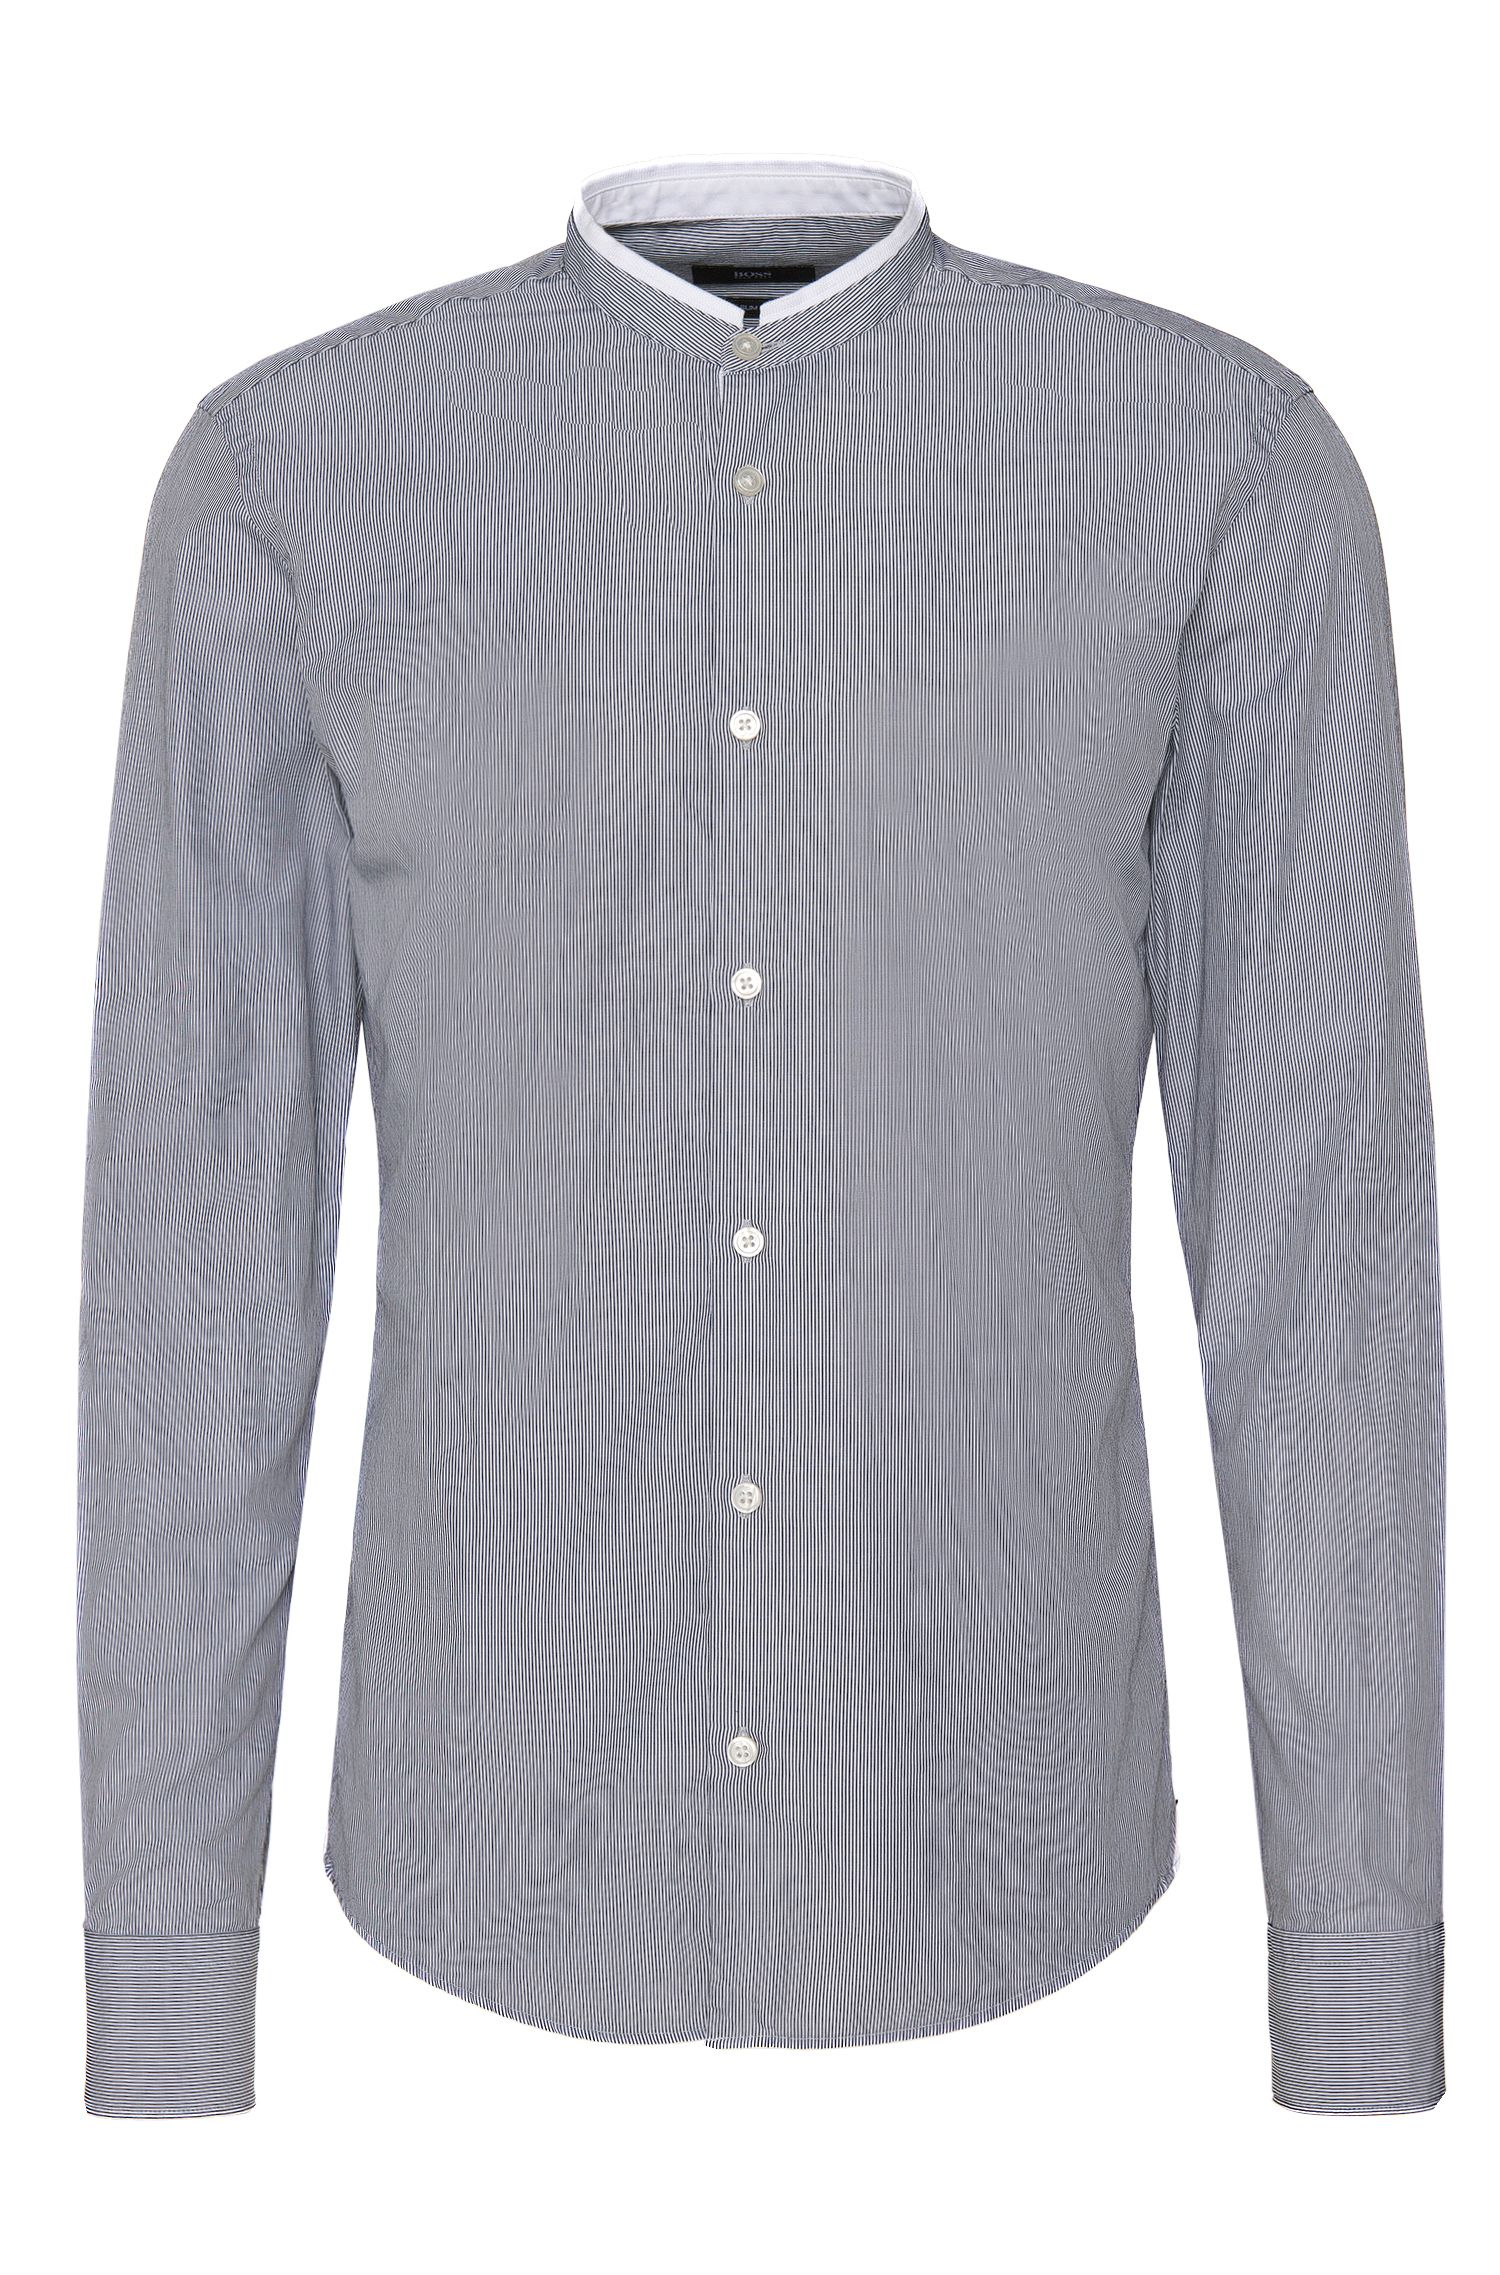 'Rab F' | Slim Fit, Cotton Pinstriped Button Down Shirt